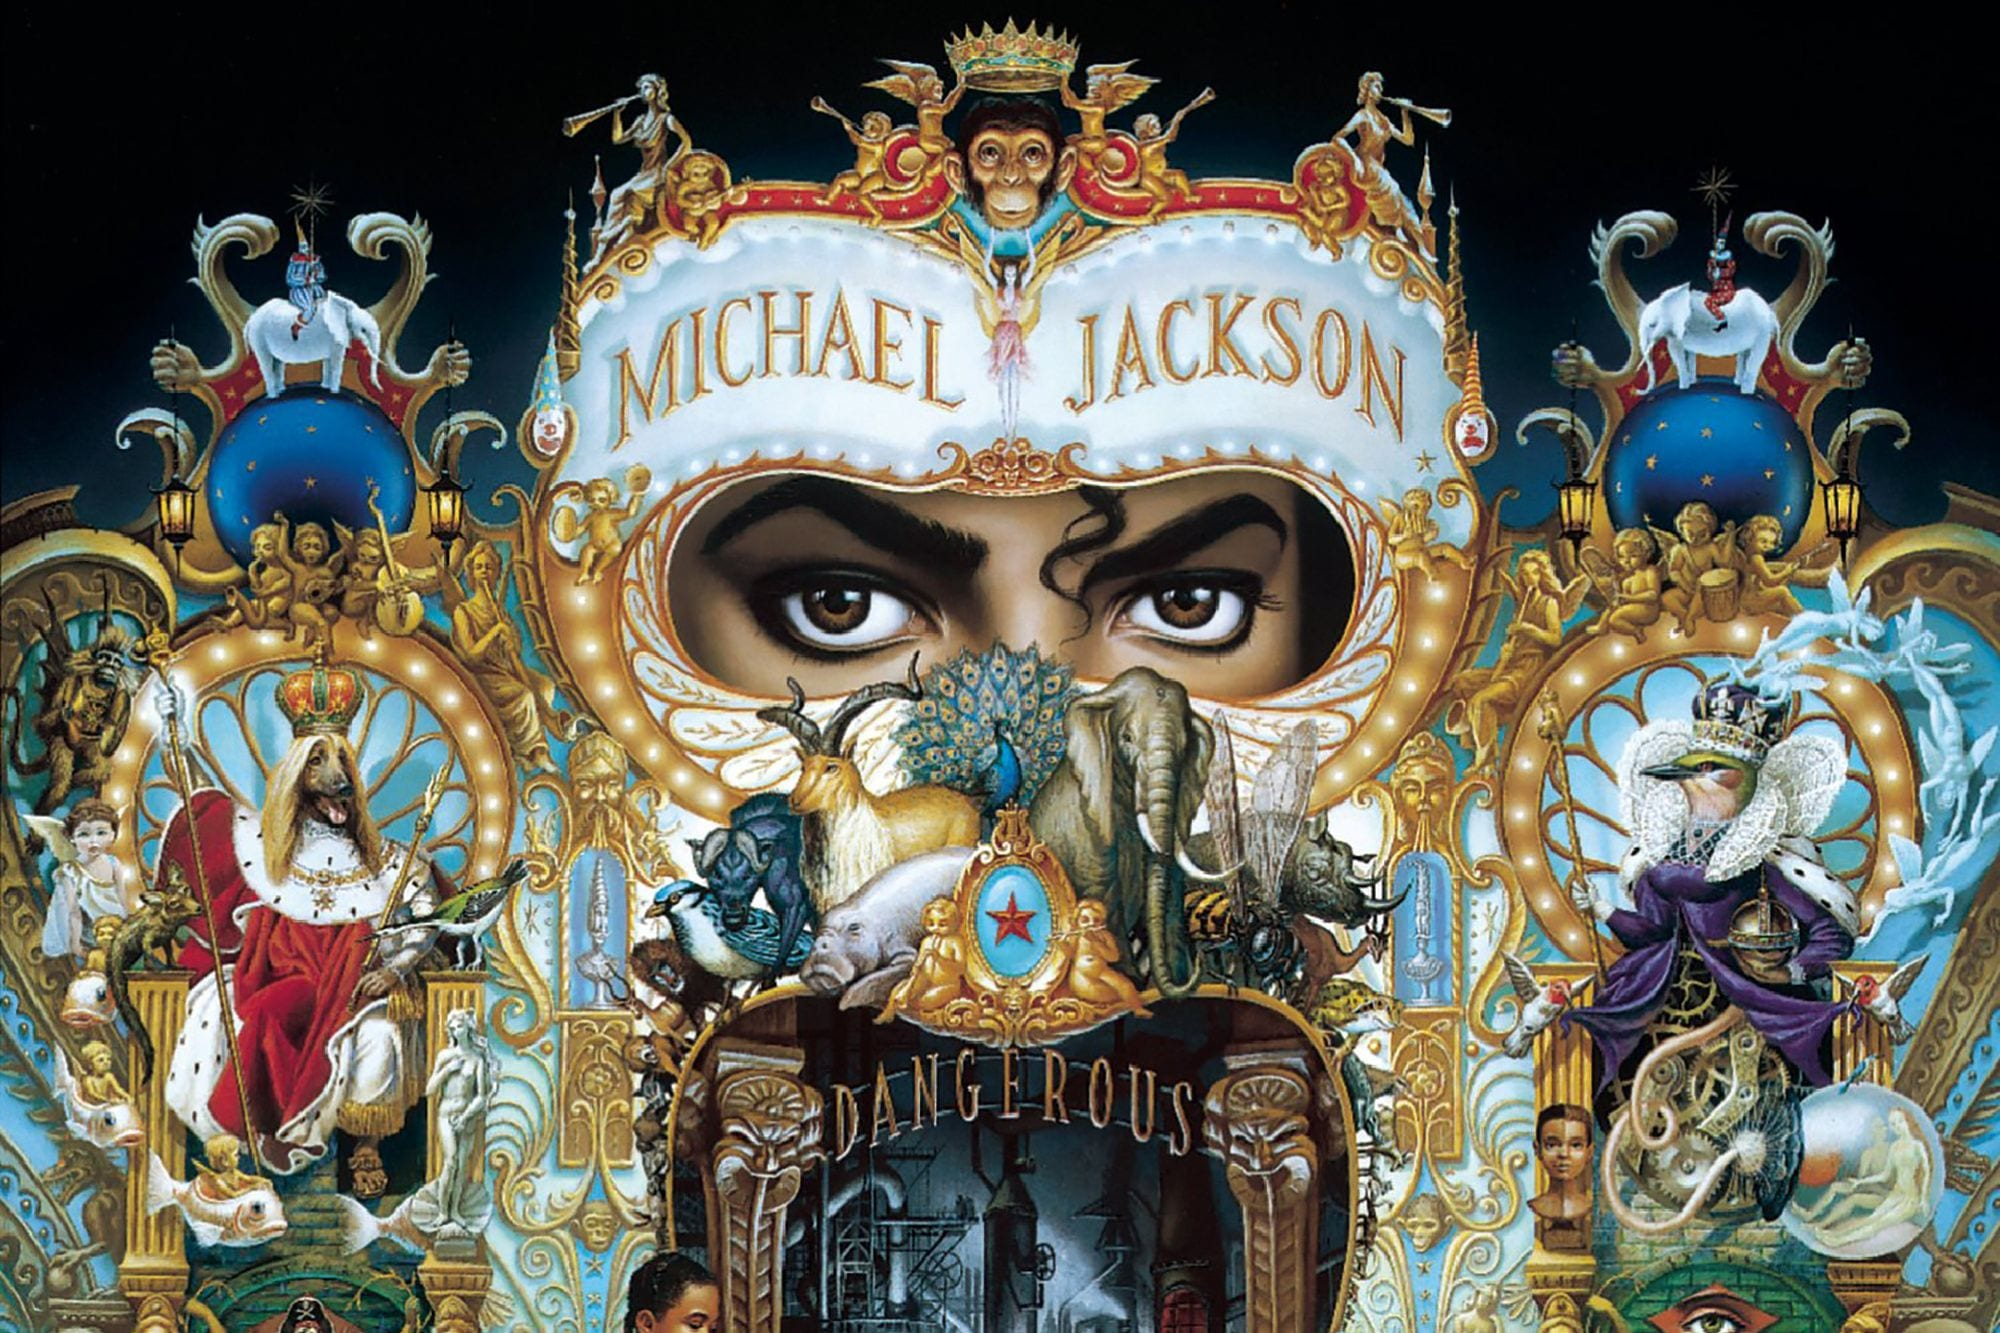 Michael Jackson's 'Dangerous' and the Reinvention of Pop